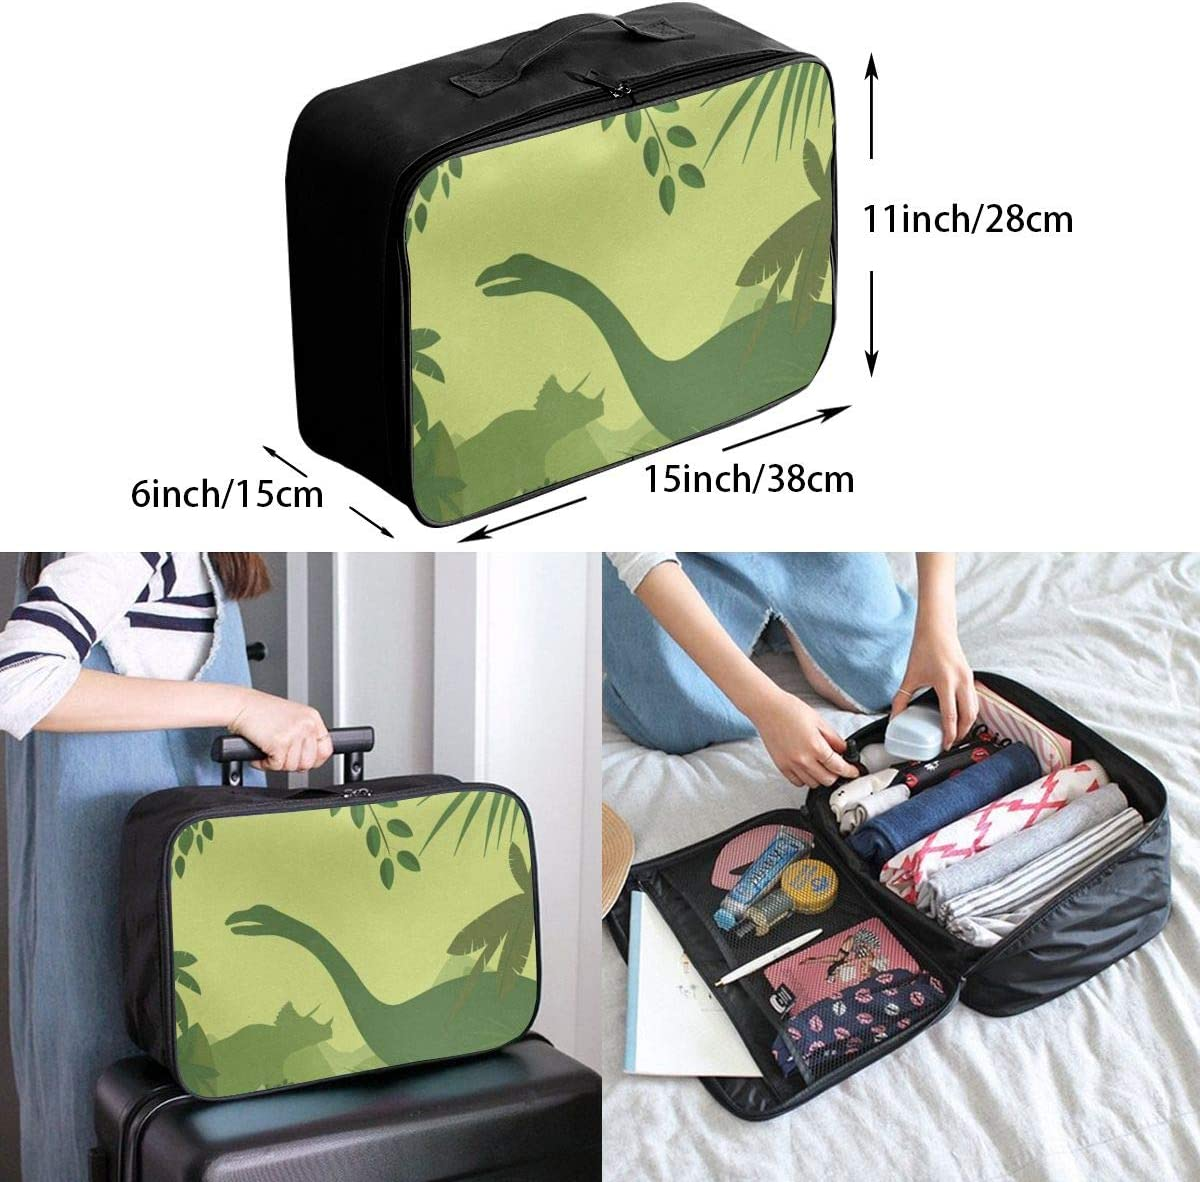 Travel Bags Dinosaurs Silhouette Portable Suitcase Inspiring Trolley Handle Luggage Bag